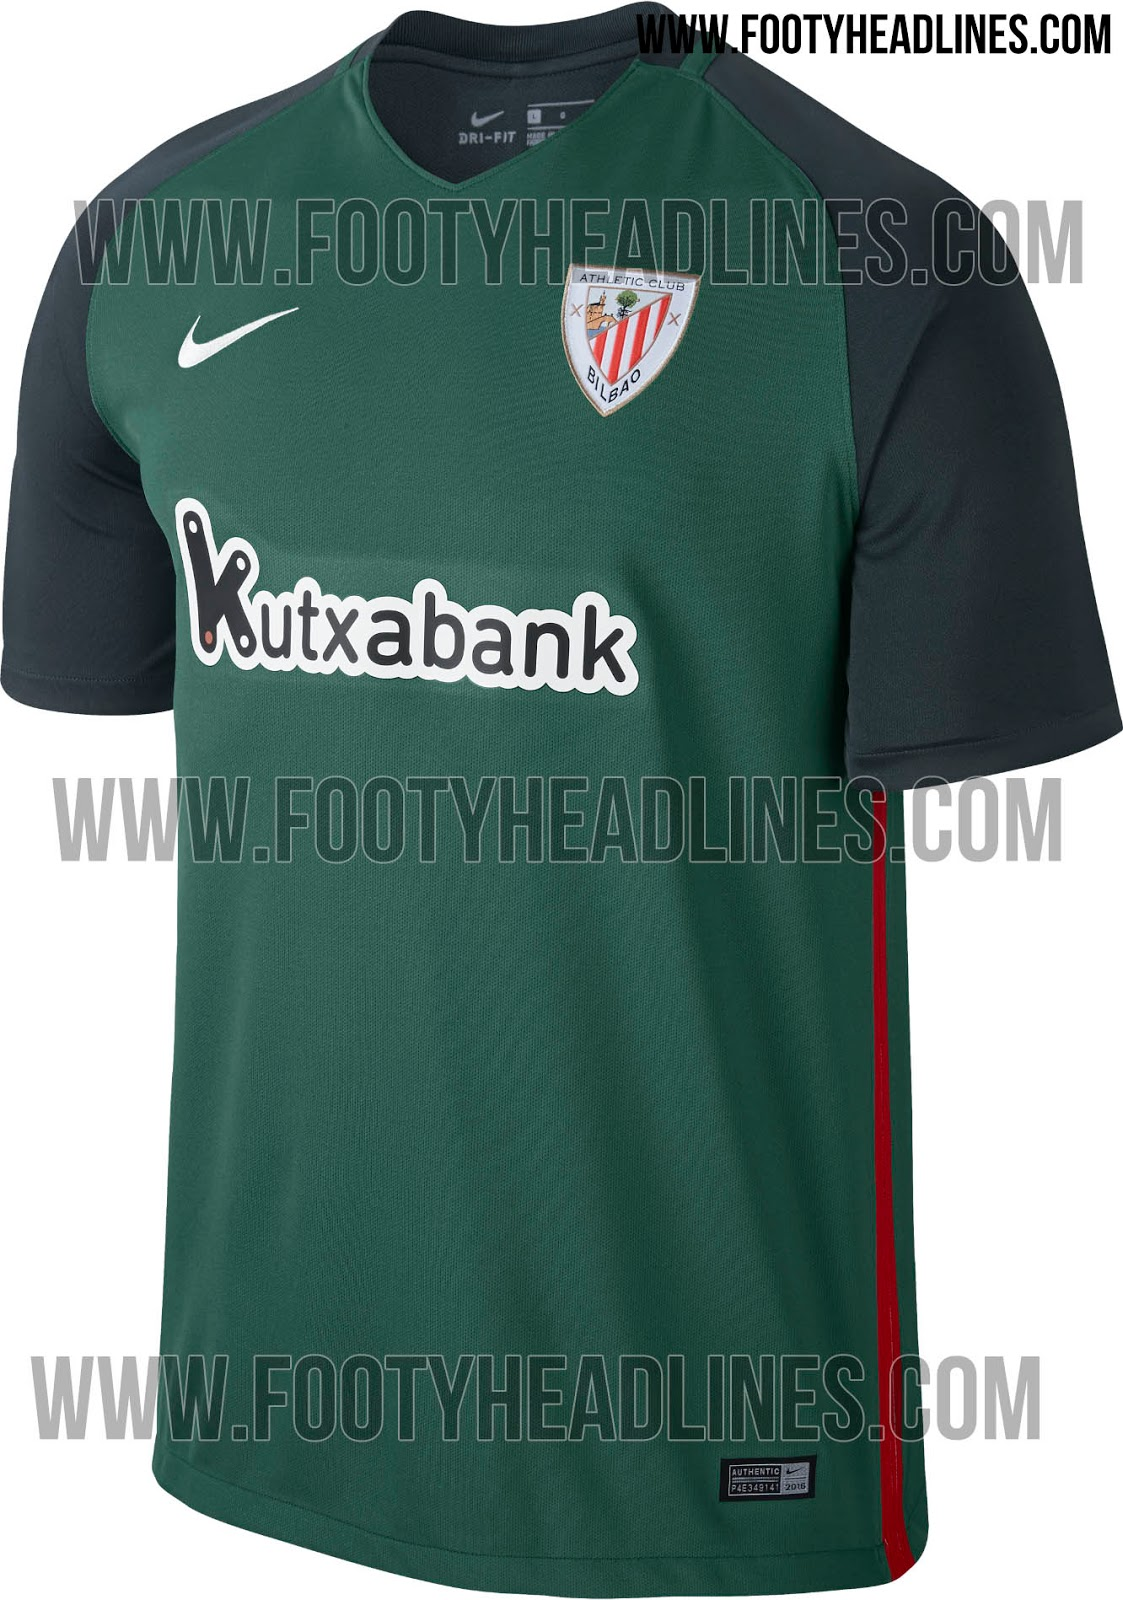 bilbao-16-17-away-kit%2B%25282%2529.jpg